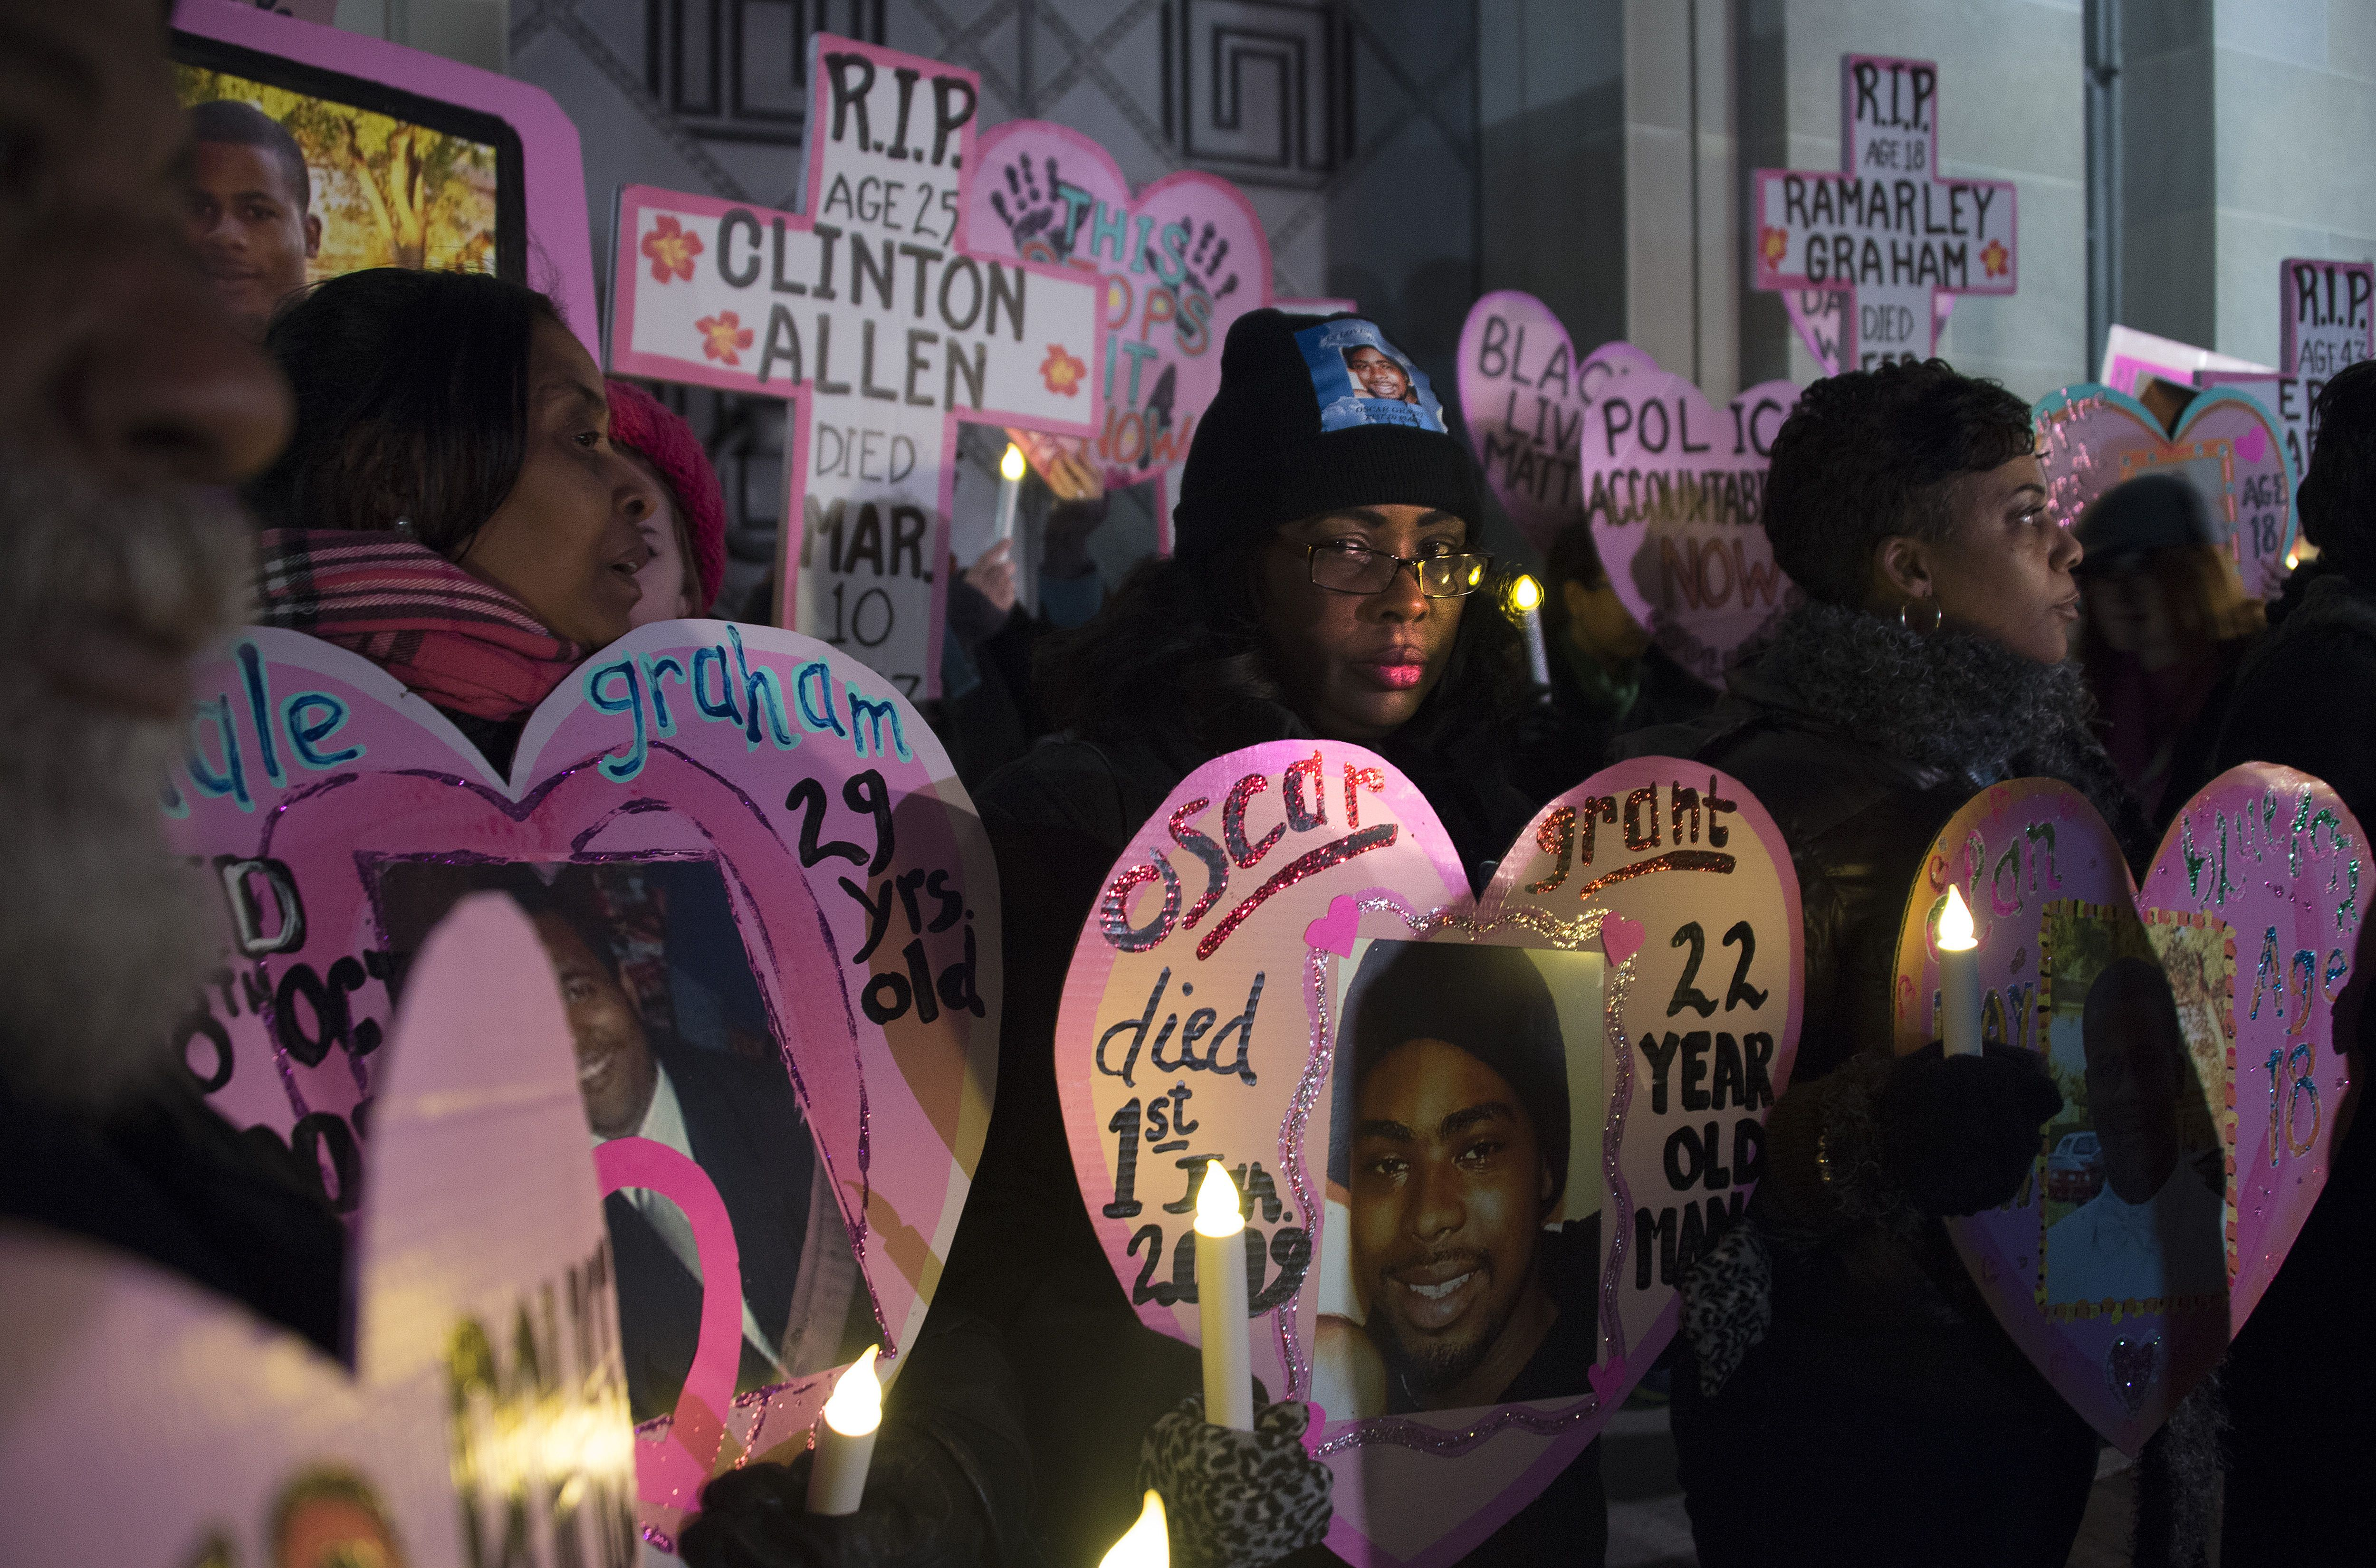 Wanda Johnson (center), whose son Oscar Grant was fatally shot in 2009 by a police officer in Oakland, California, stands with others during a vigil in Washington, D.C., on Dec. 10, 2014.